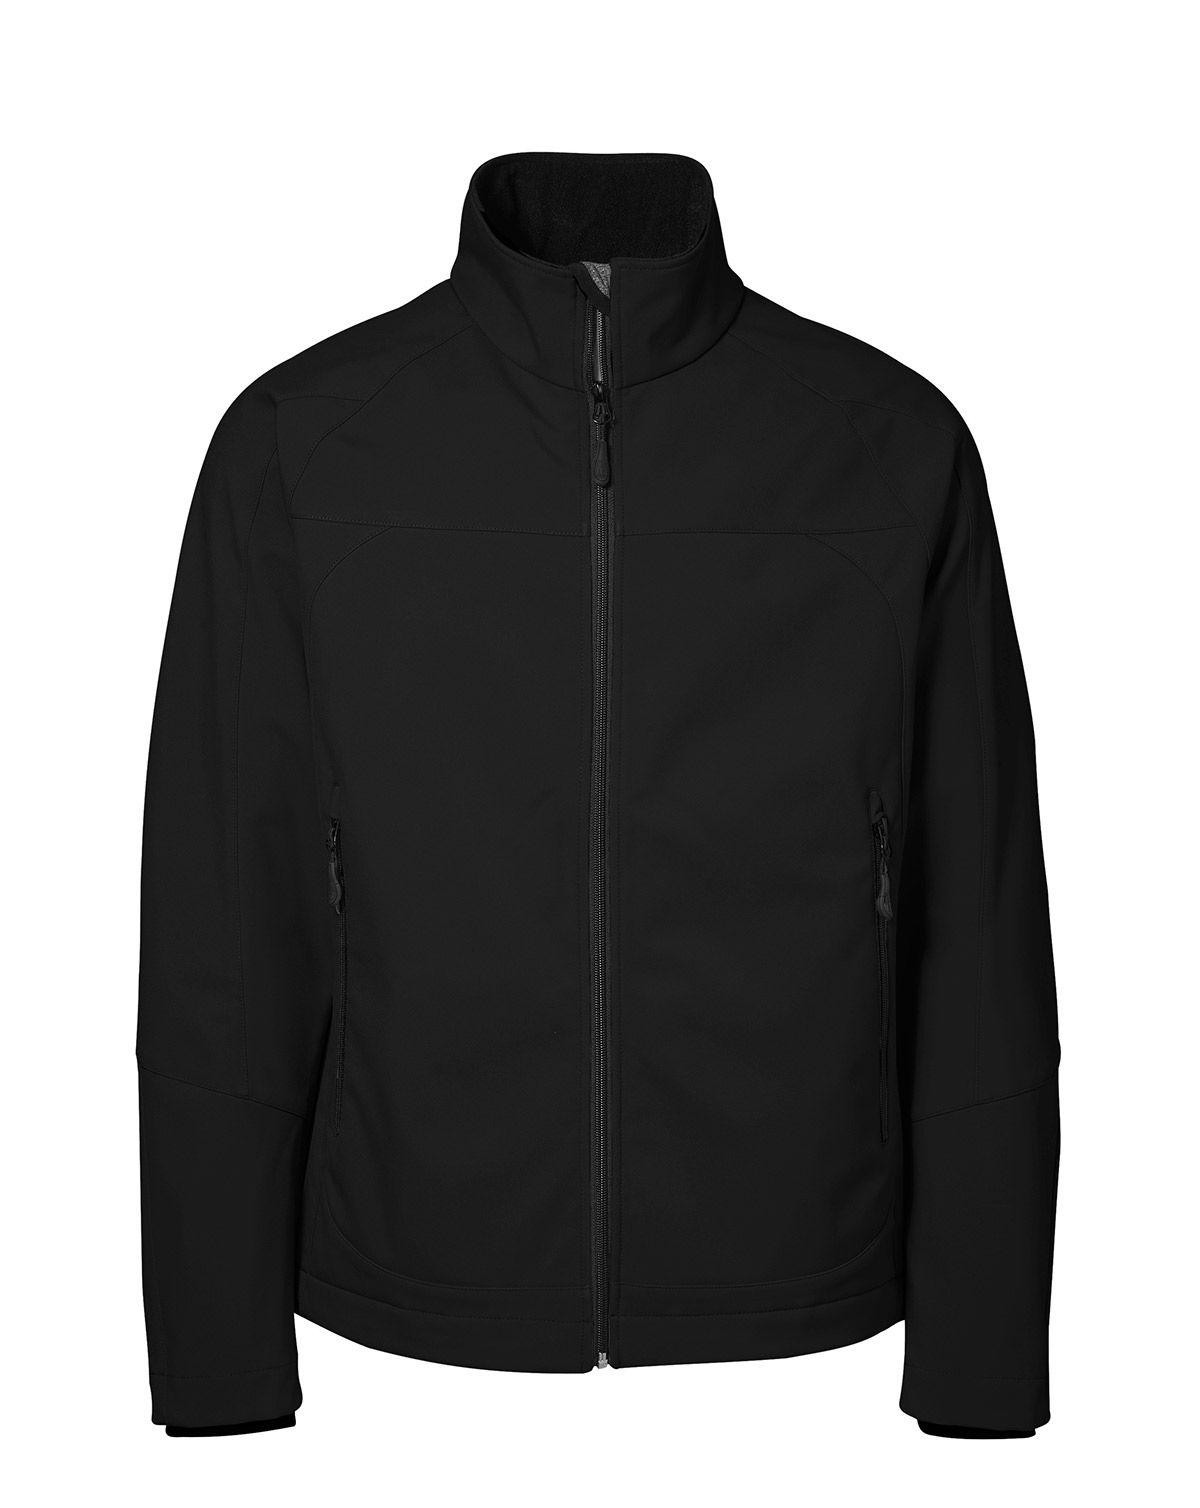 Image of   ID Funktionel Softshell Jakke (Sort, 2XL)